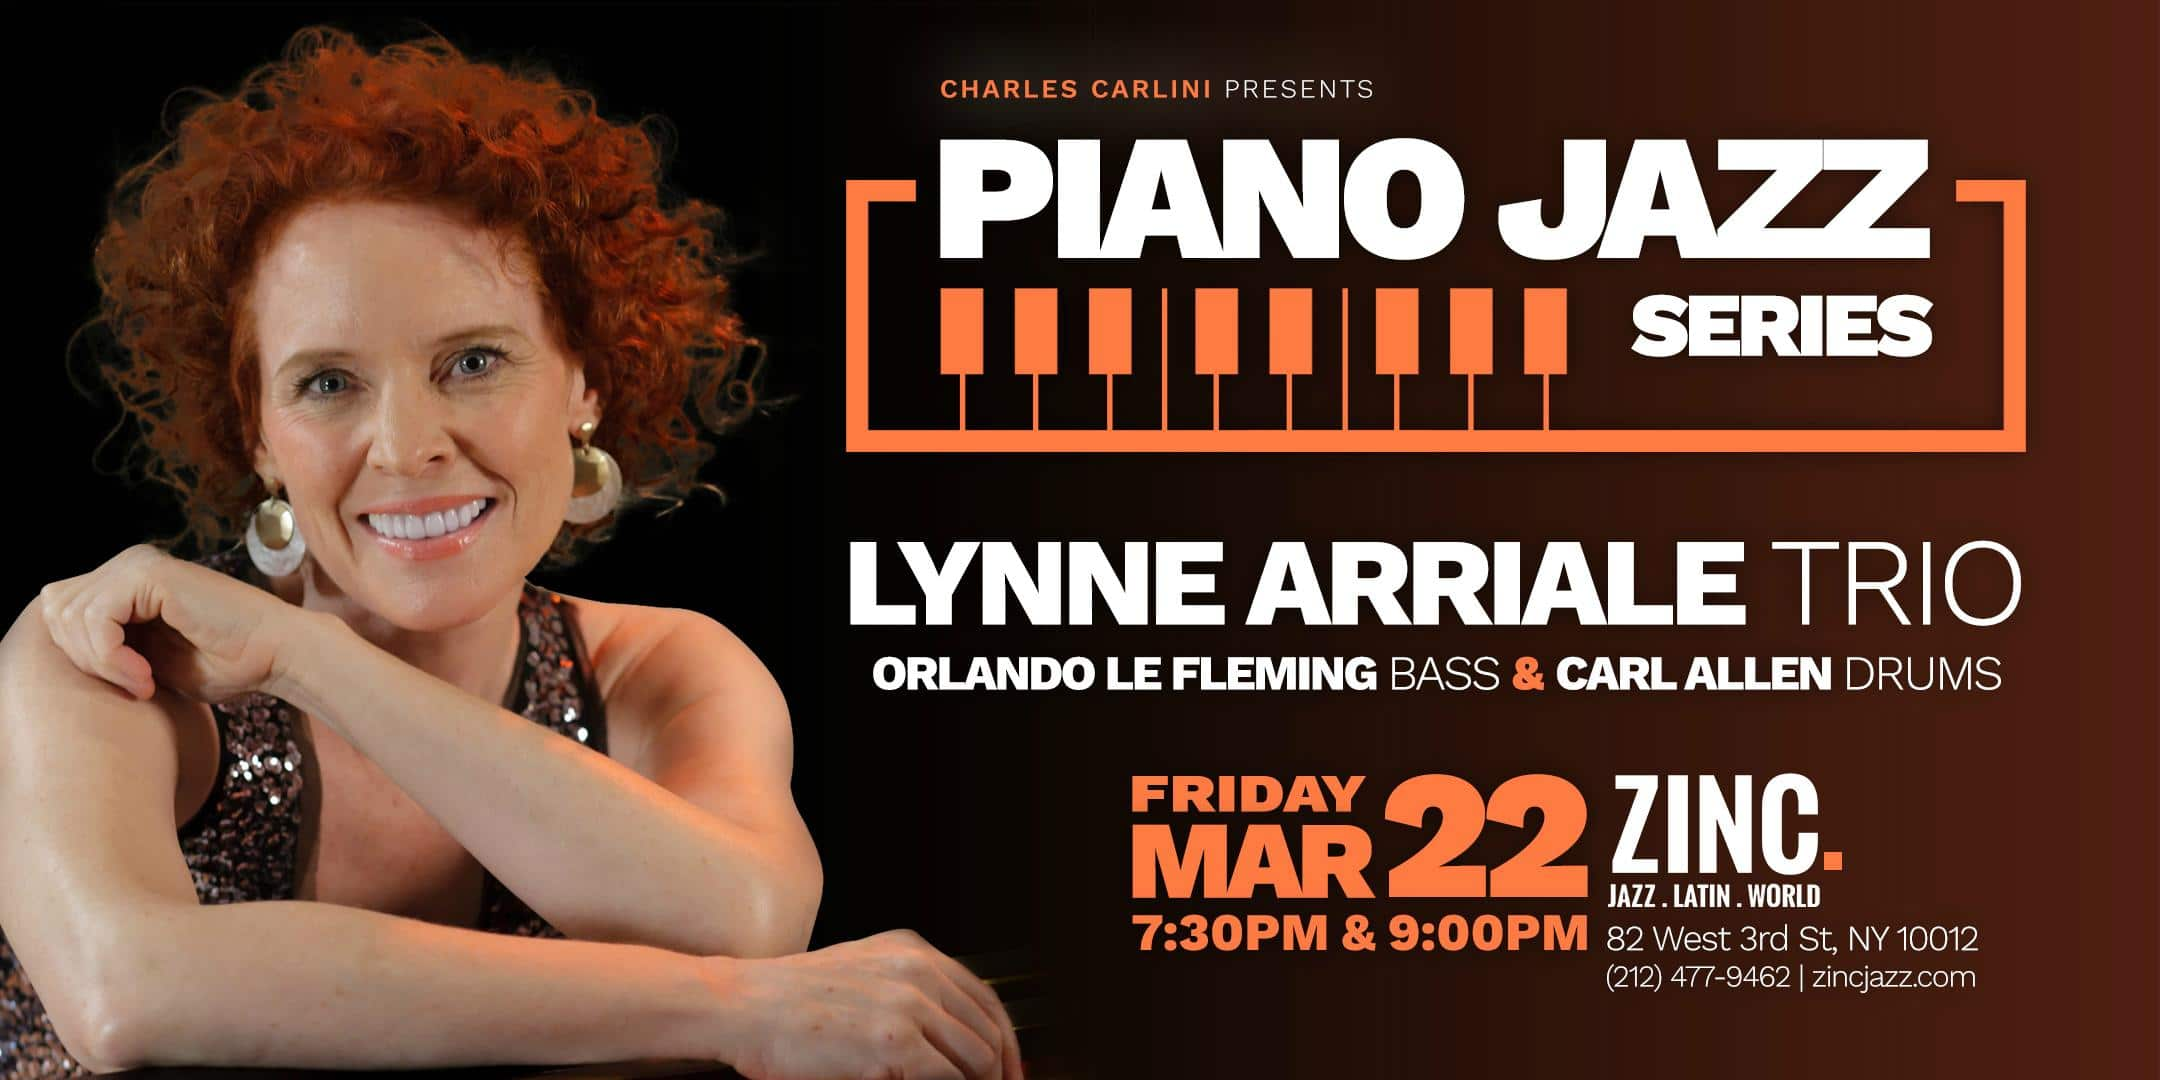 Piano Jazz Series: Lynne Arriale Trio